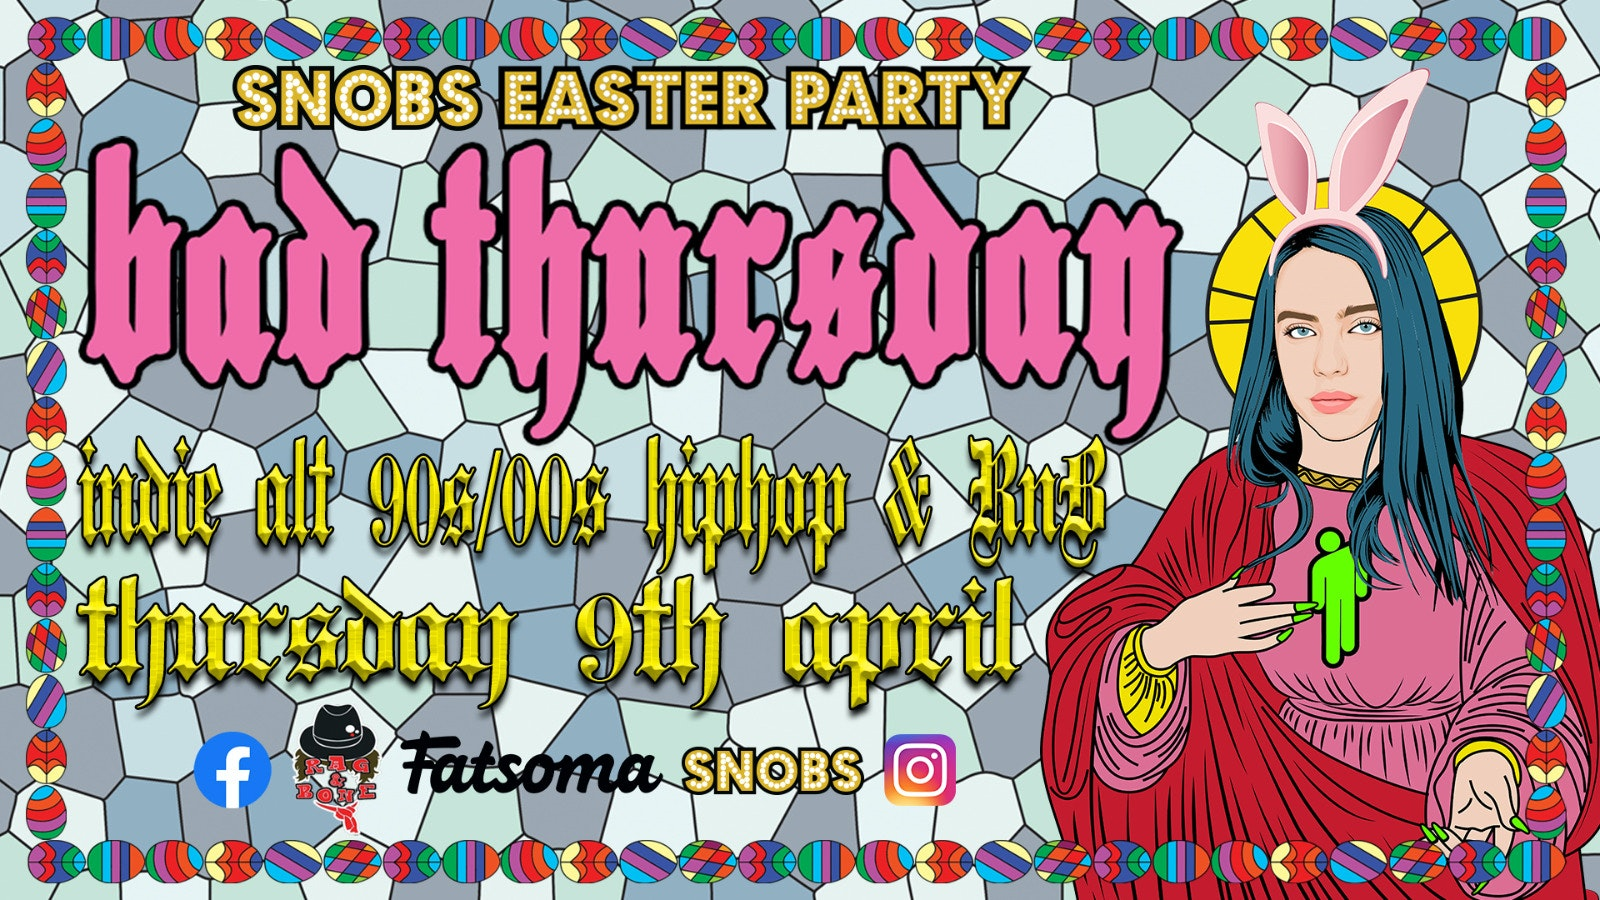 Bad Thursday – Snobs Easter Party